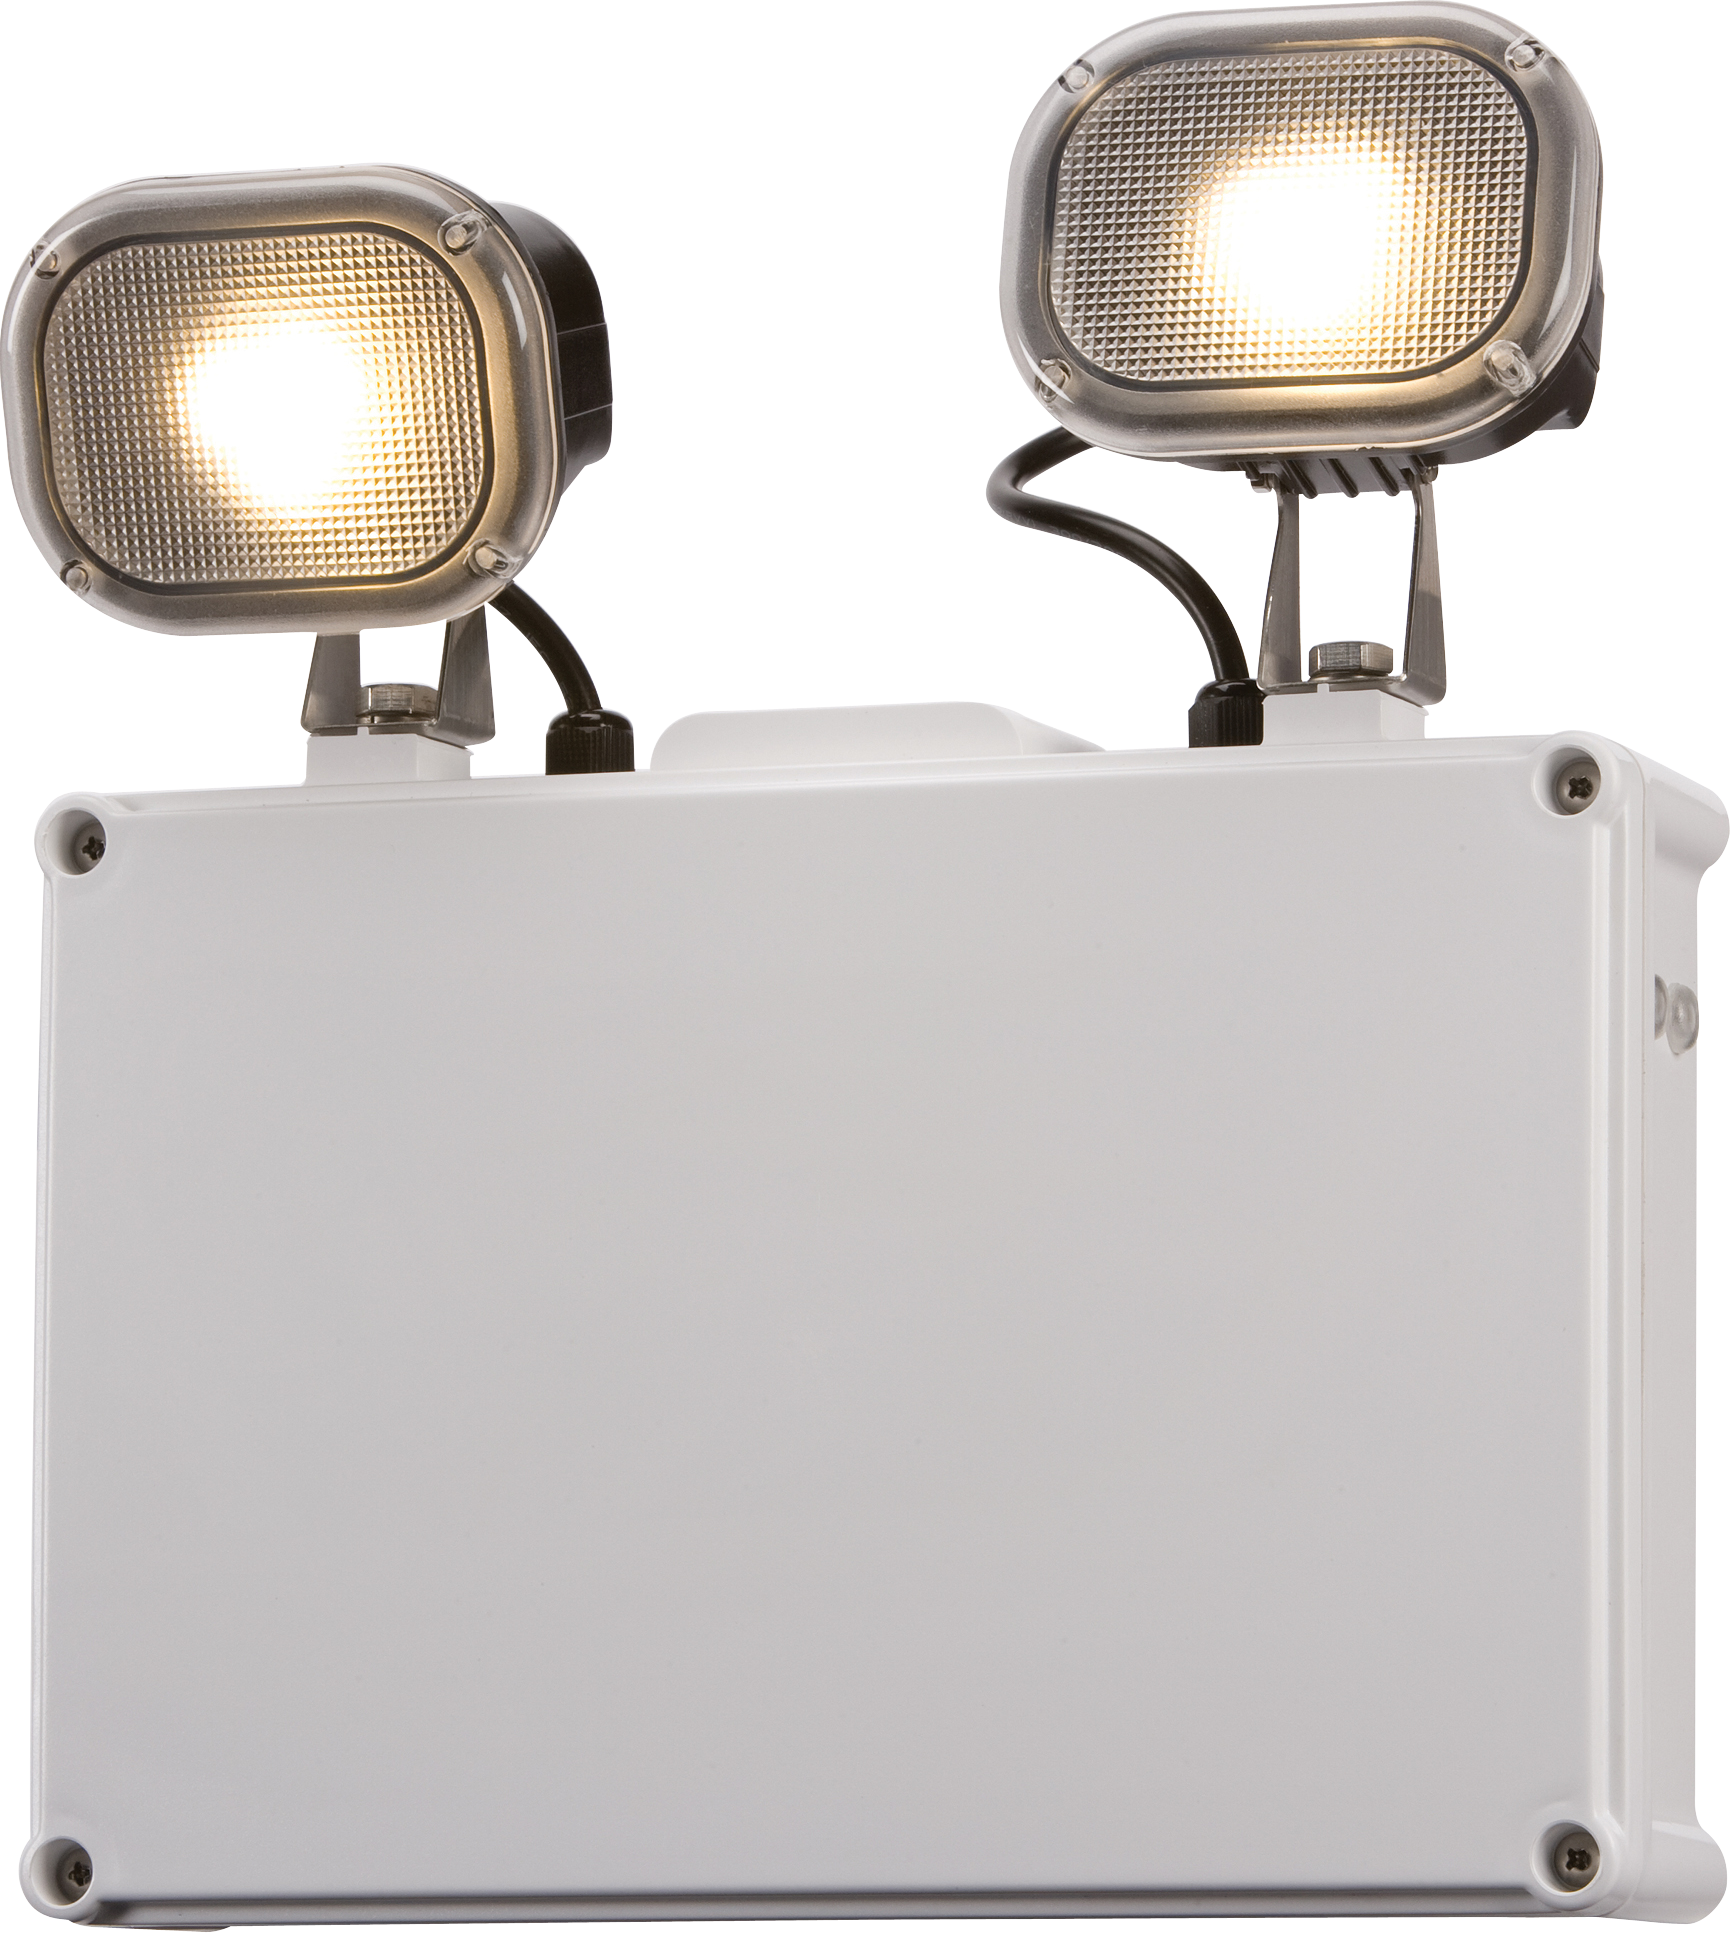 230V IP65 2x3W LED Twin Spot Emergency Light (non-maintained use only)